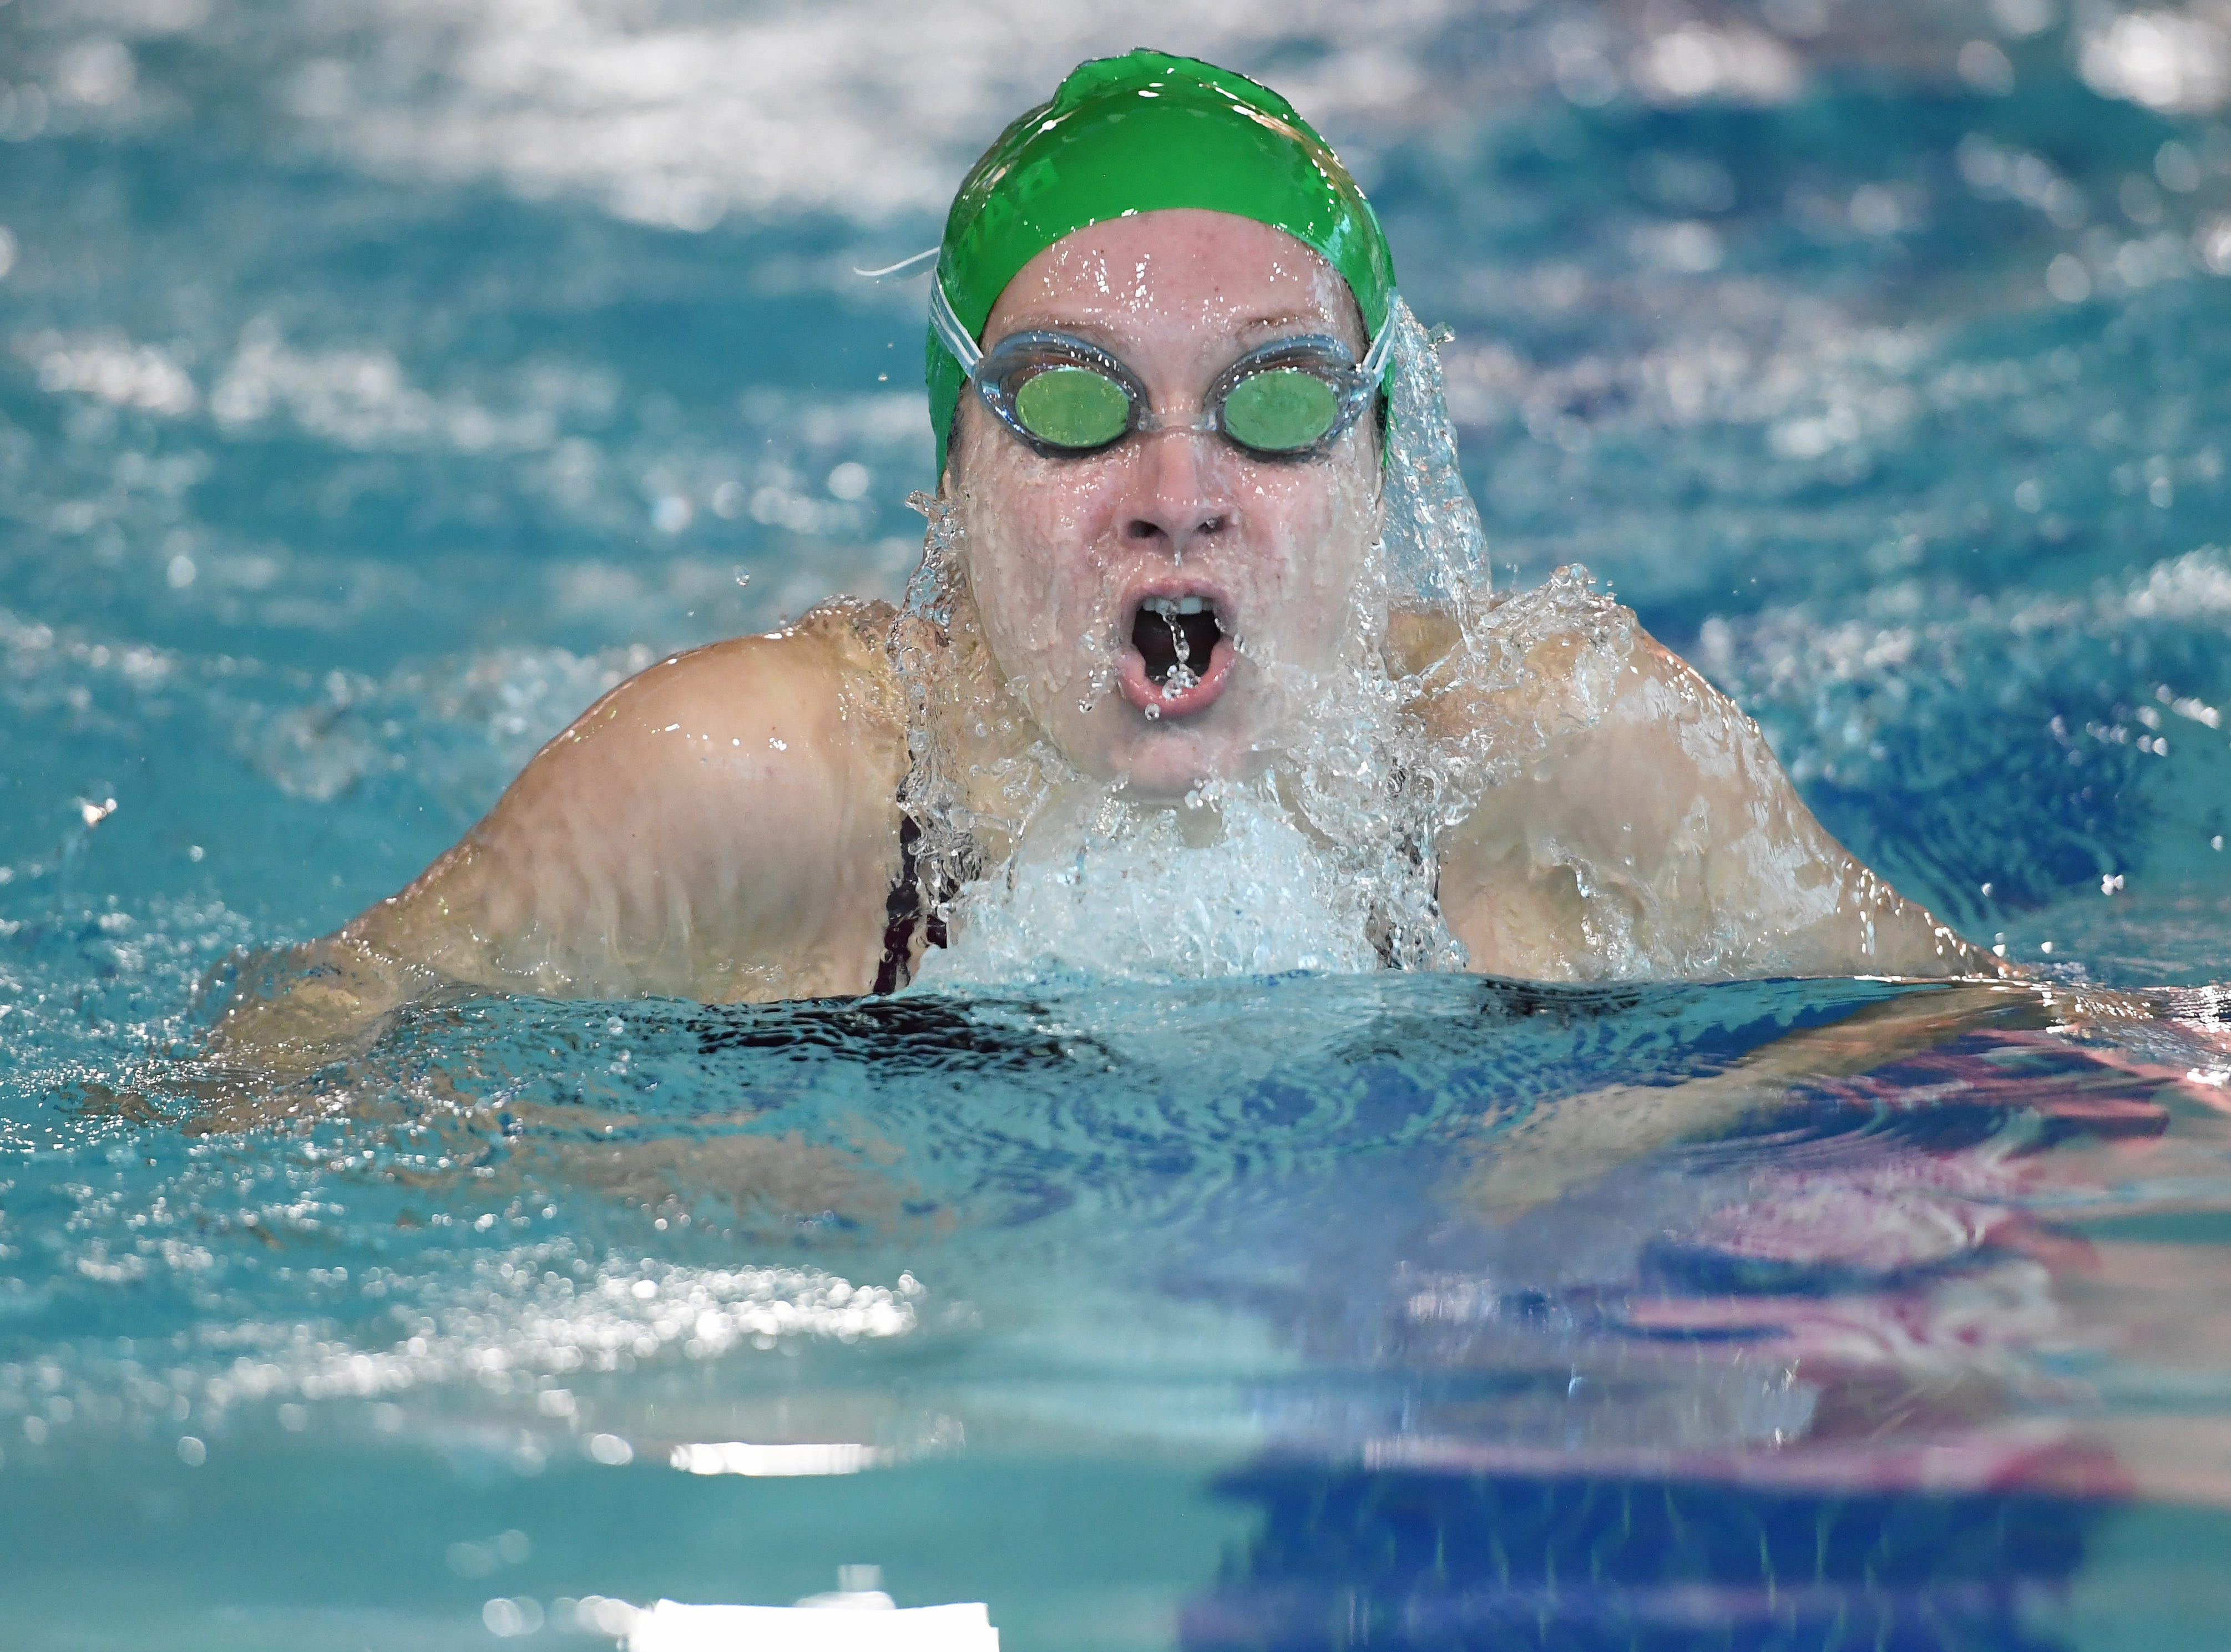 NJSIAA swimming sectional finals: Morristown vs Montclair in North I-A at Passaic County Technical Institute on Friday, February 15, 2019. Nicole Barkemeyer, of Morristown, in the 100 Breaststroke.